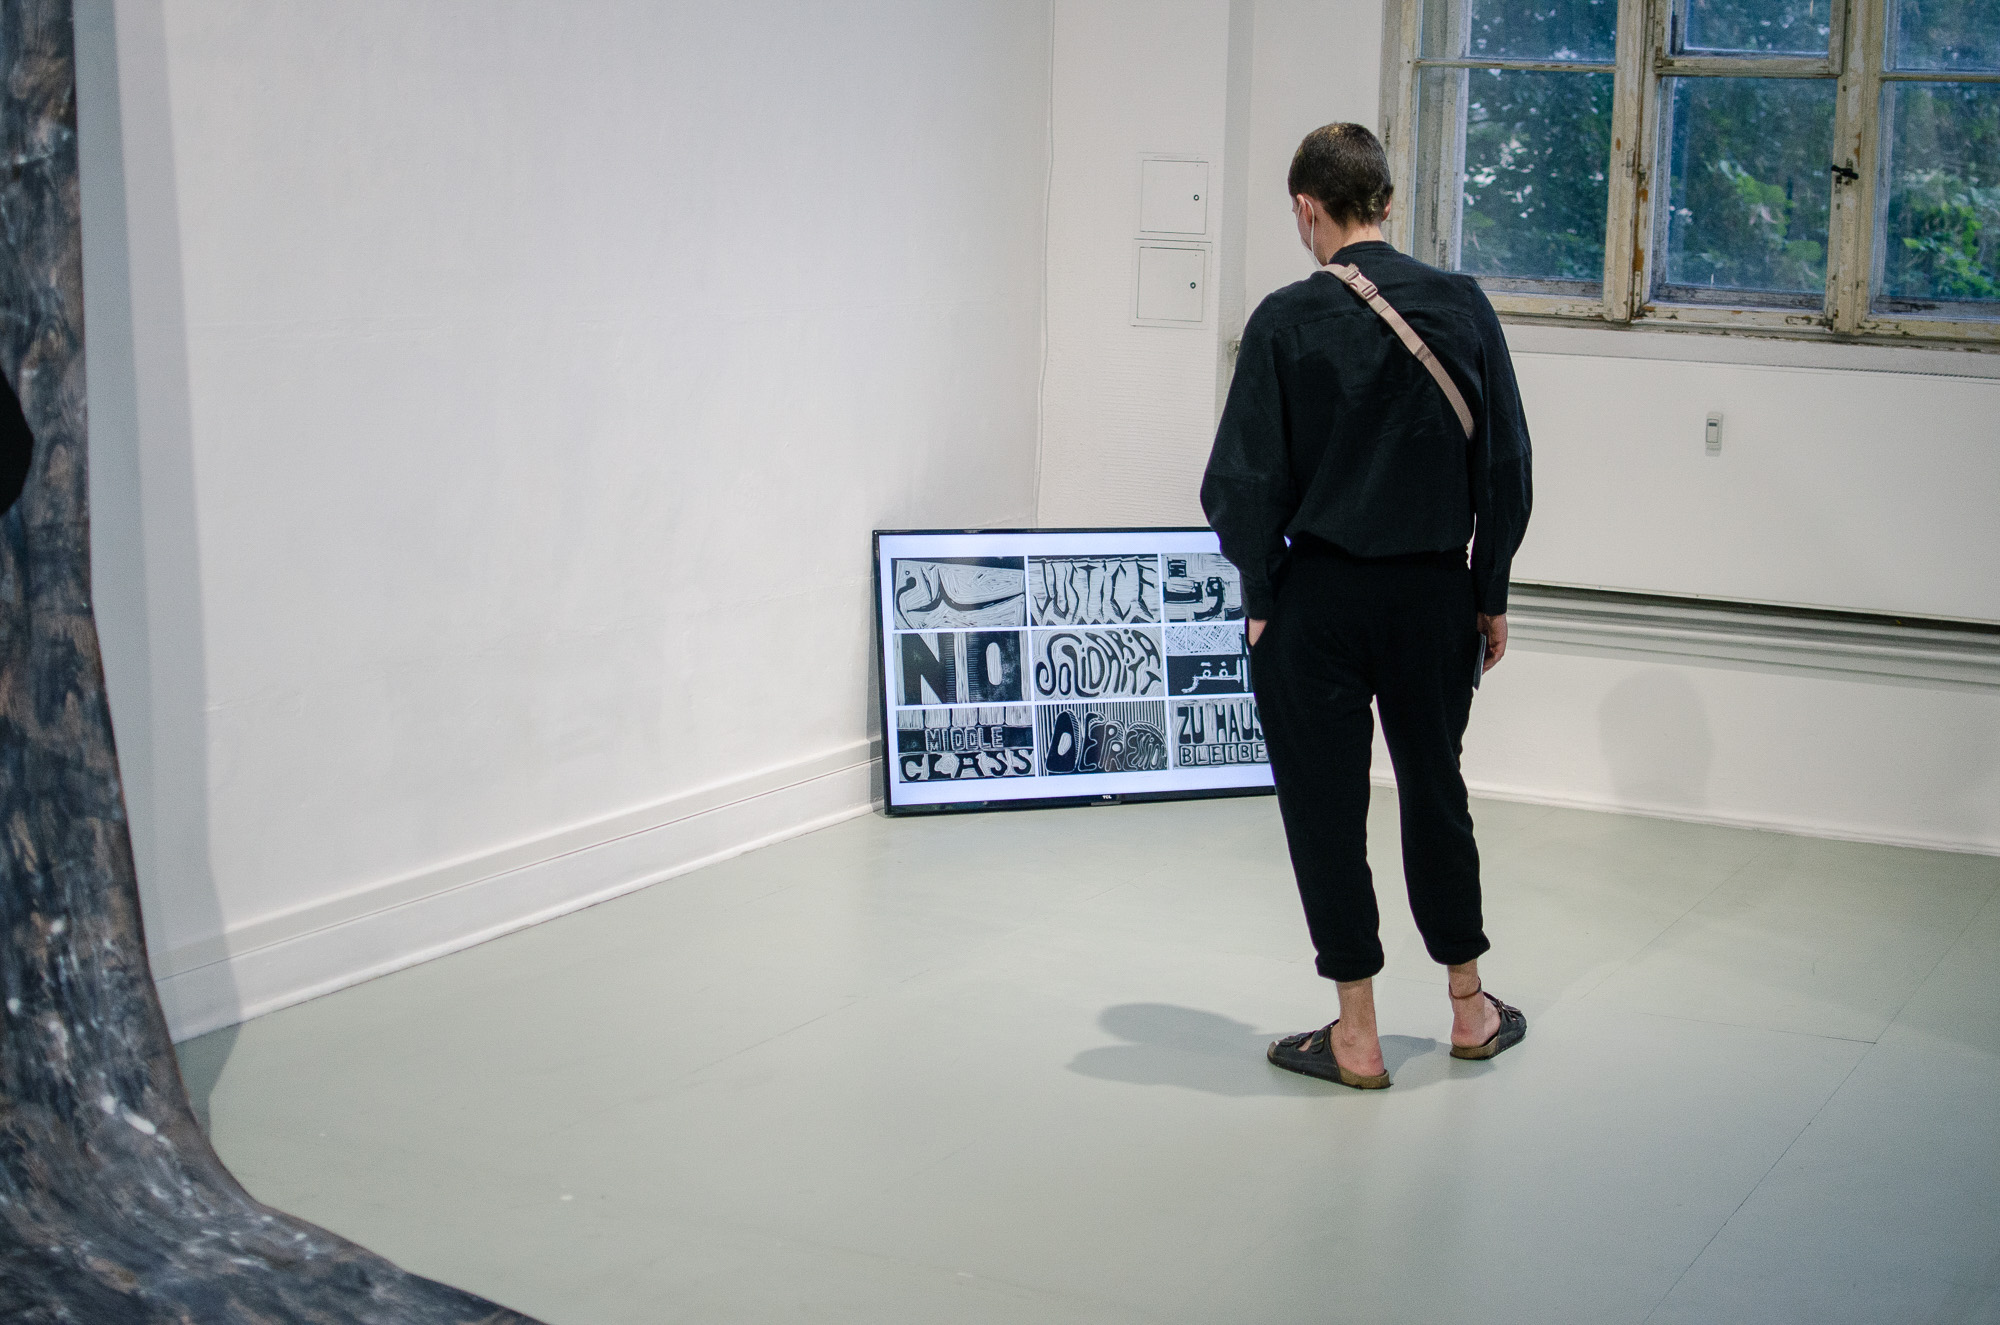 PKRD-48-Airy-Democratic-Spirituality-vernissage-PK-at-Alte-Handlesschule-20.08.21-Fanni-Papp-for-PK-2